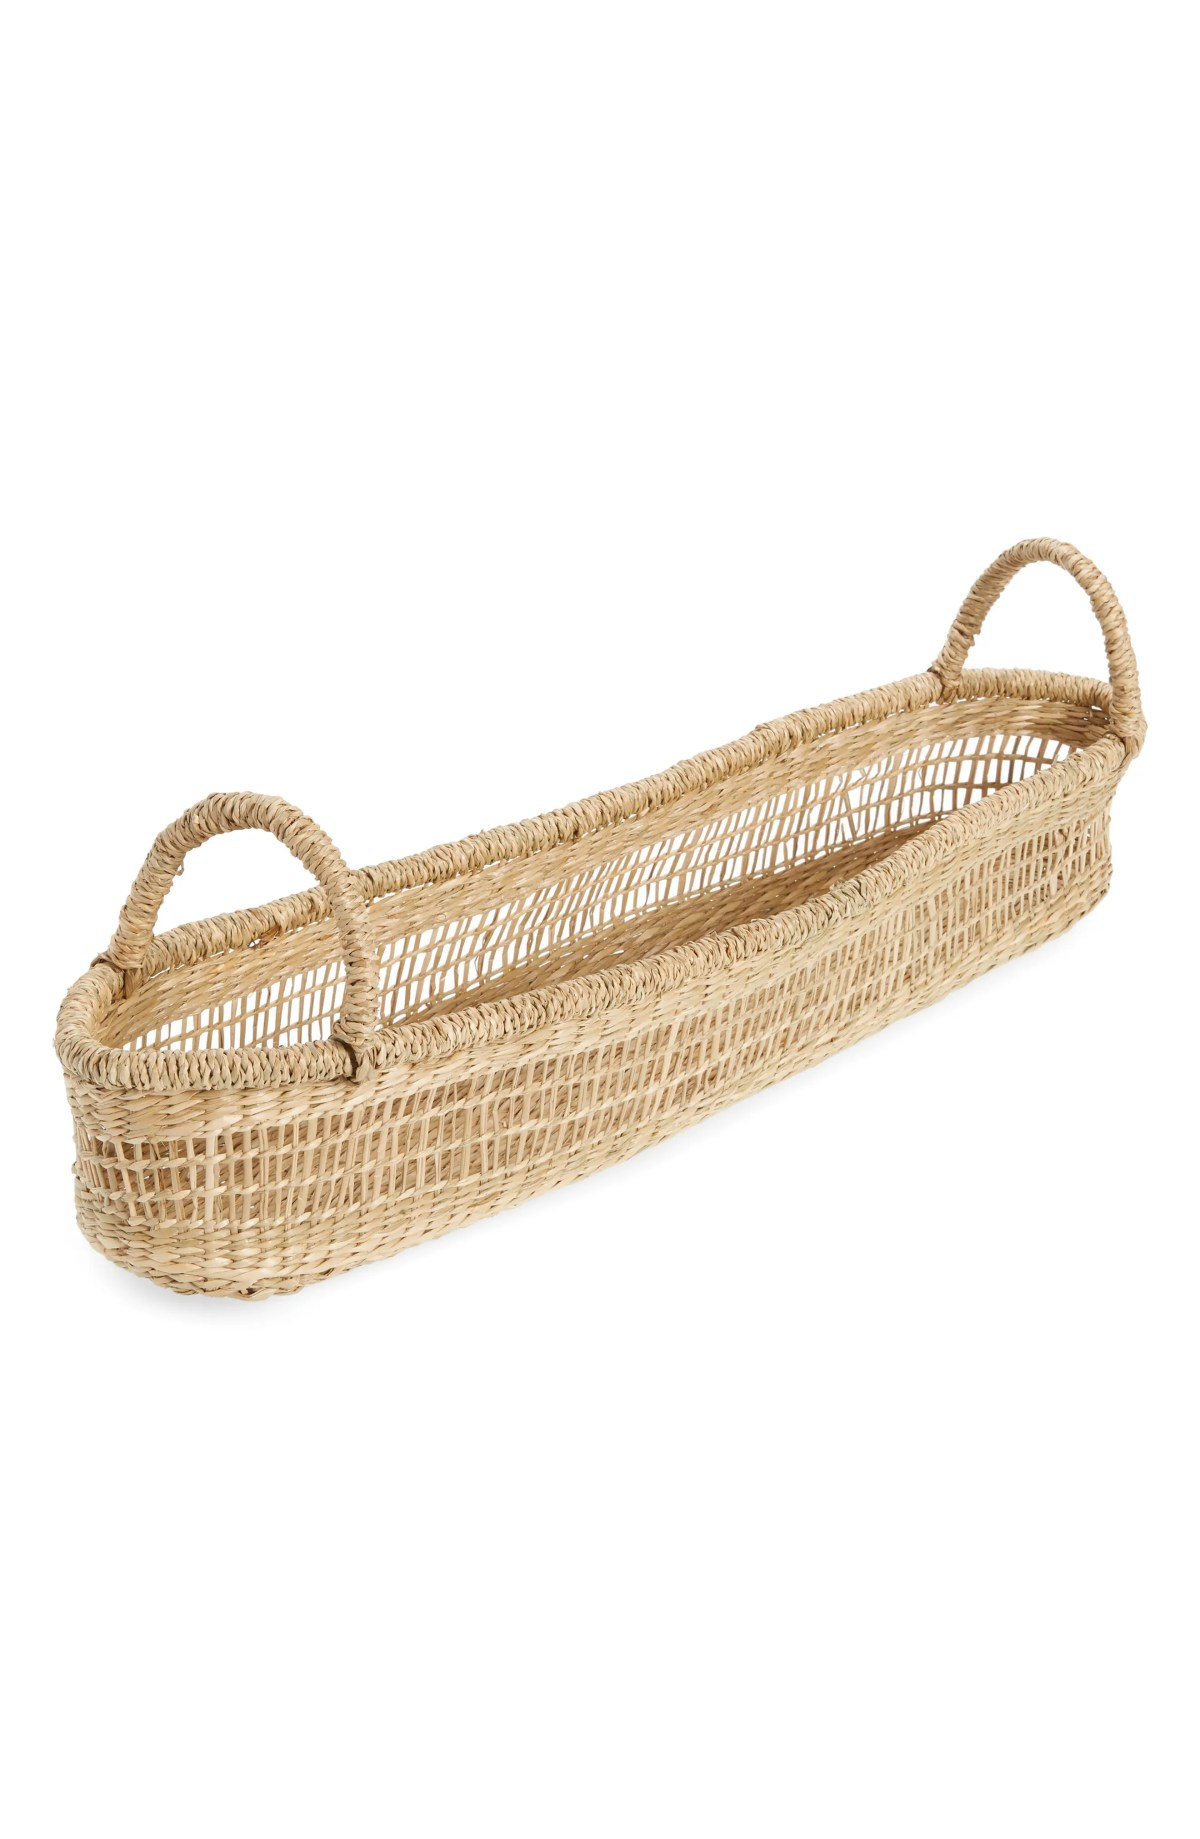 THE WHITE COMPANY Seagrass Baguette Basket, Main, color, NATURAL